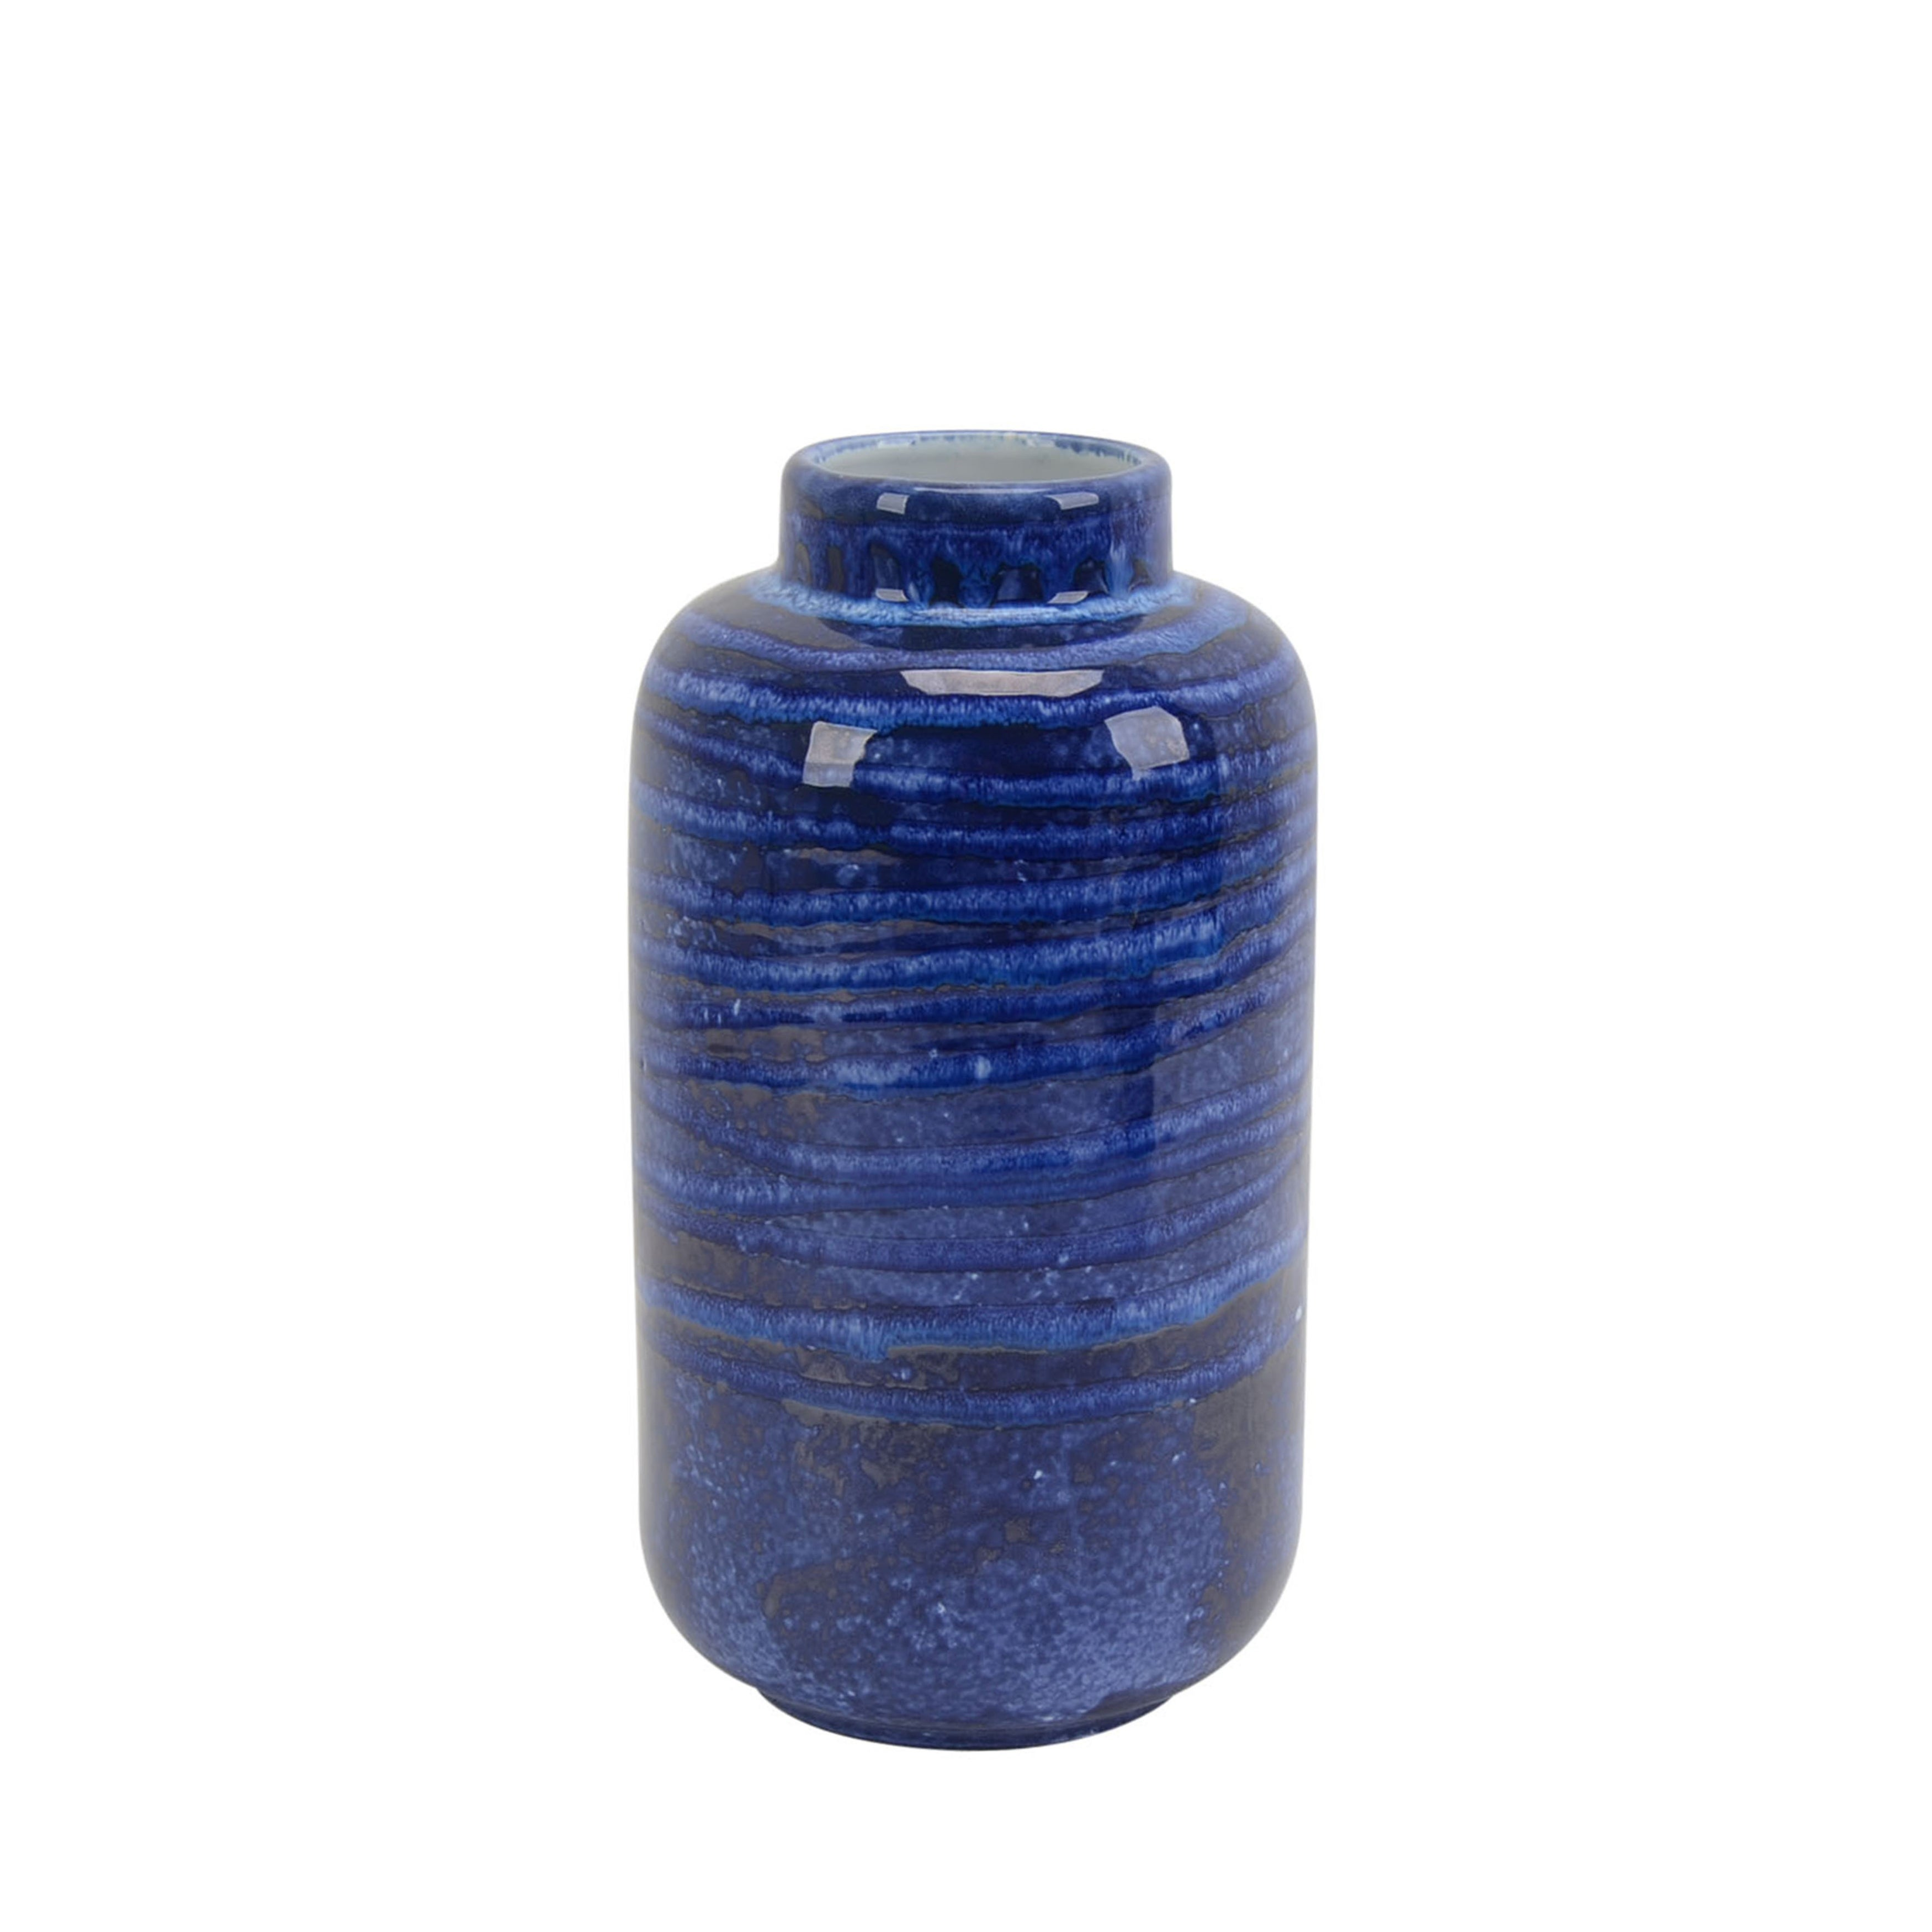 Transitional Ceramic Vase with Round Opening, Blue